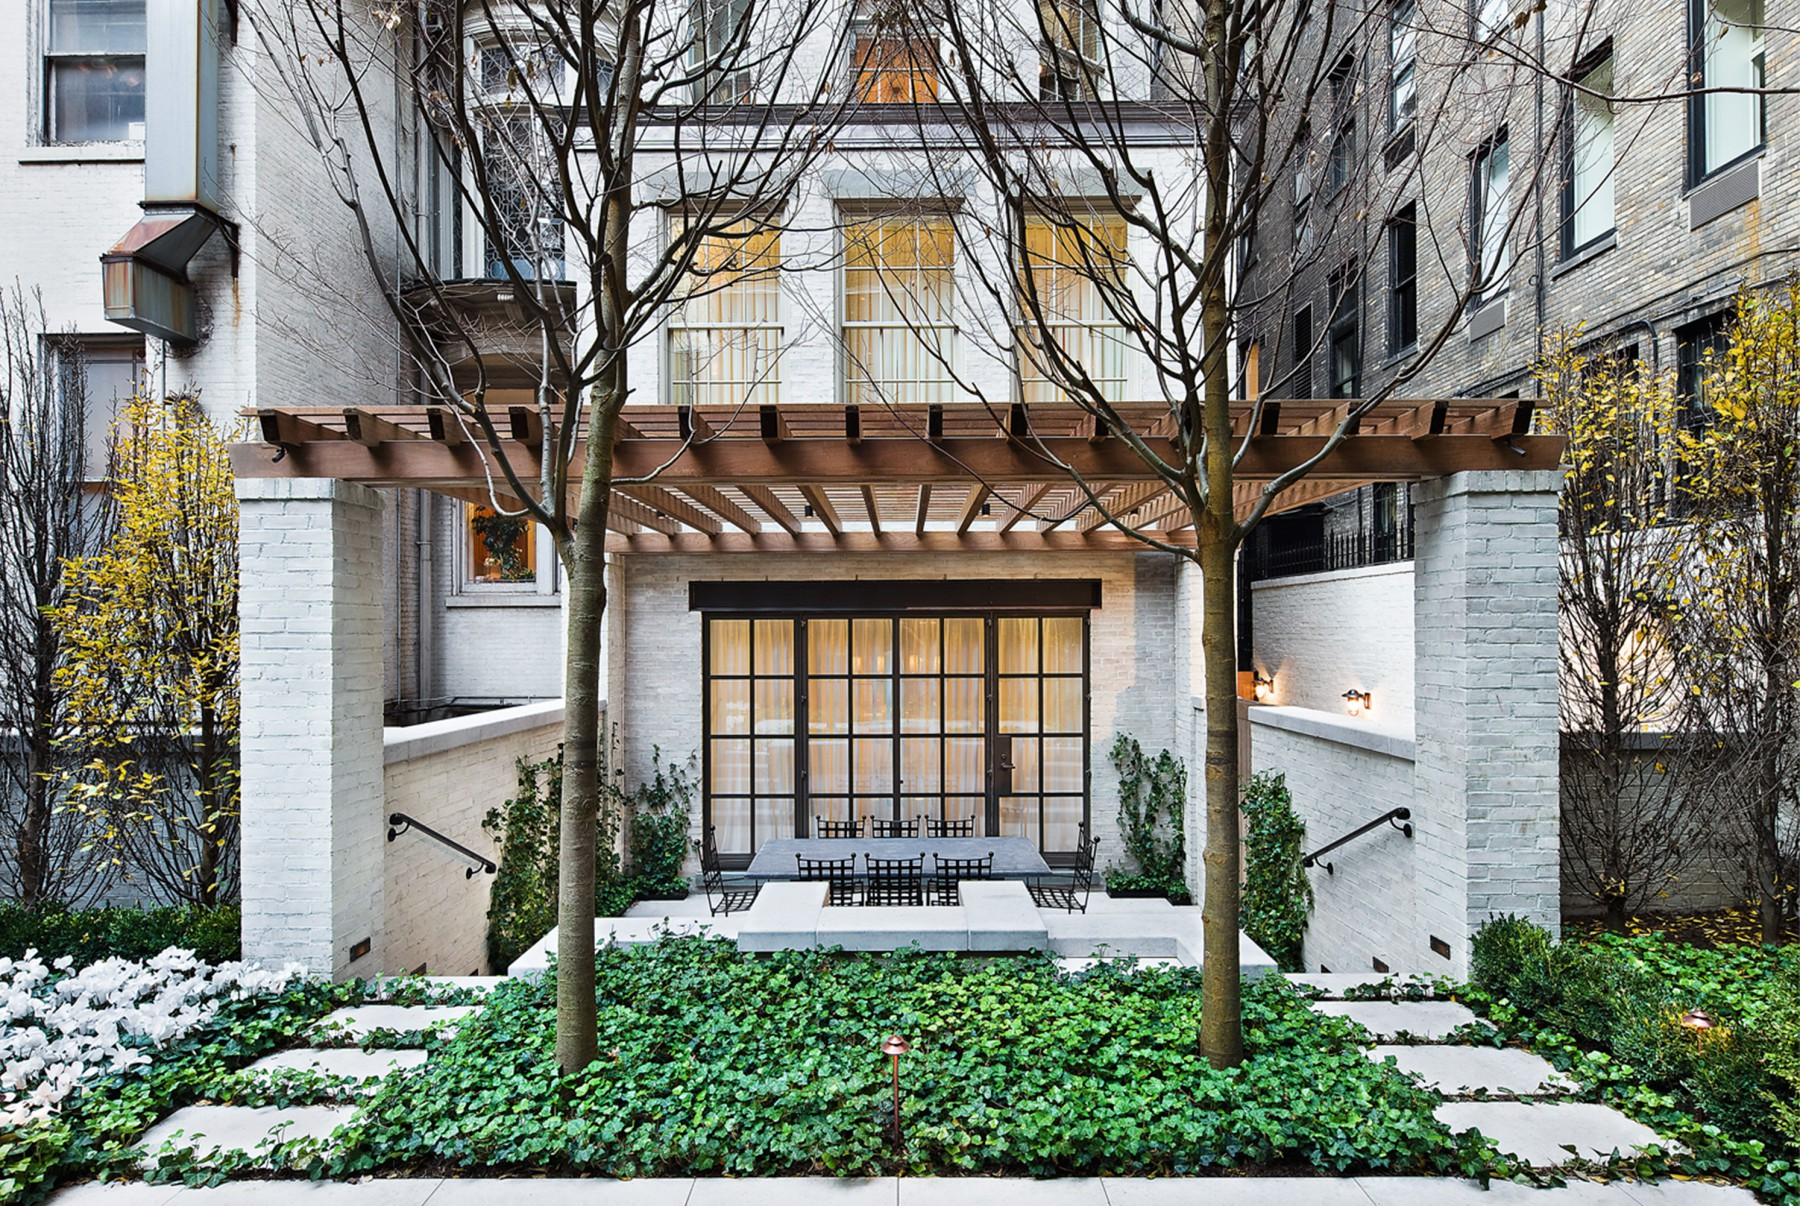 NYC garden design for entertaining. Custom doors and pergola